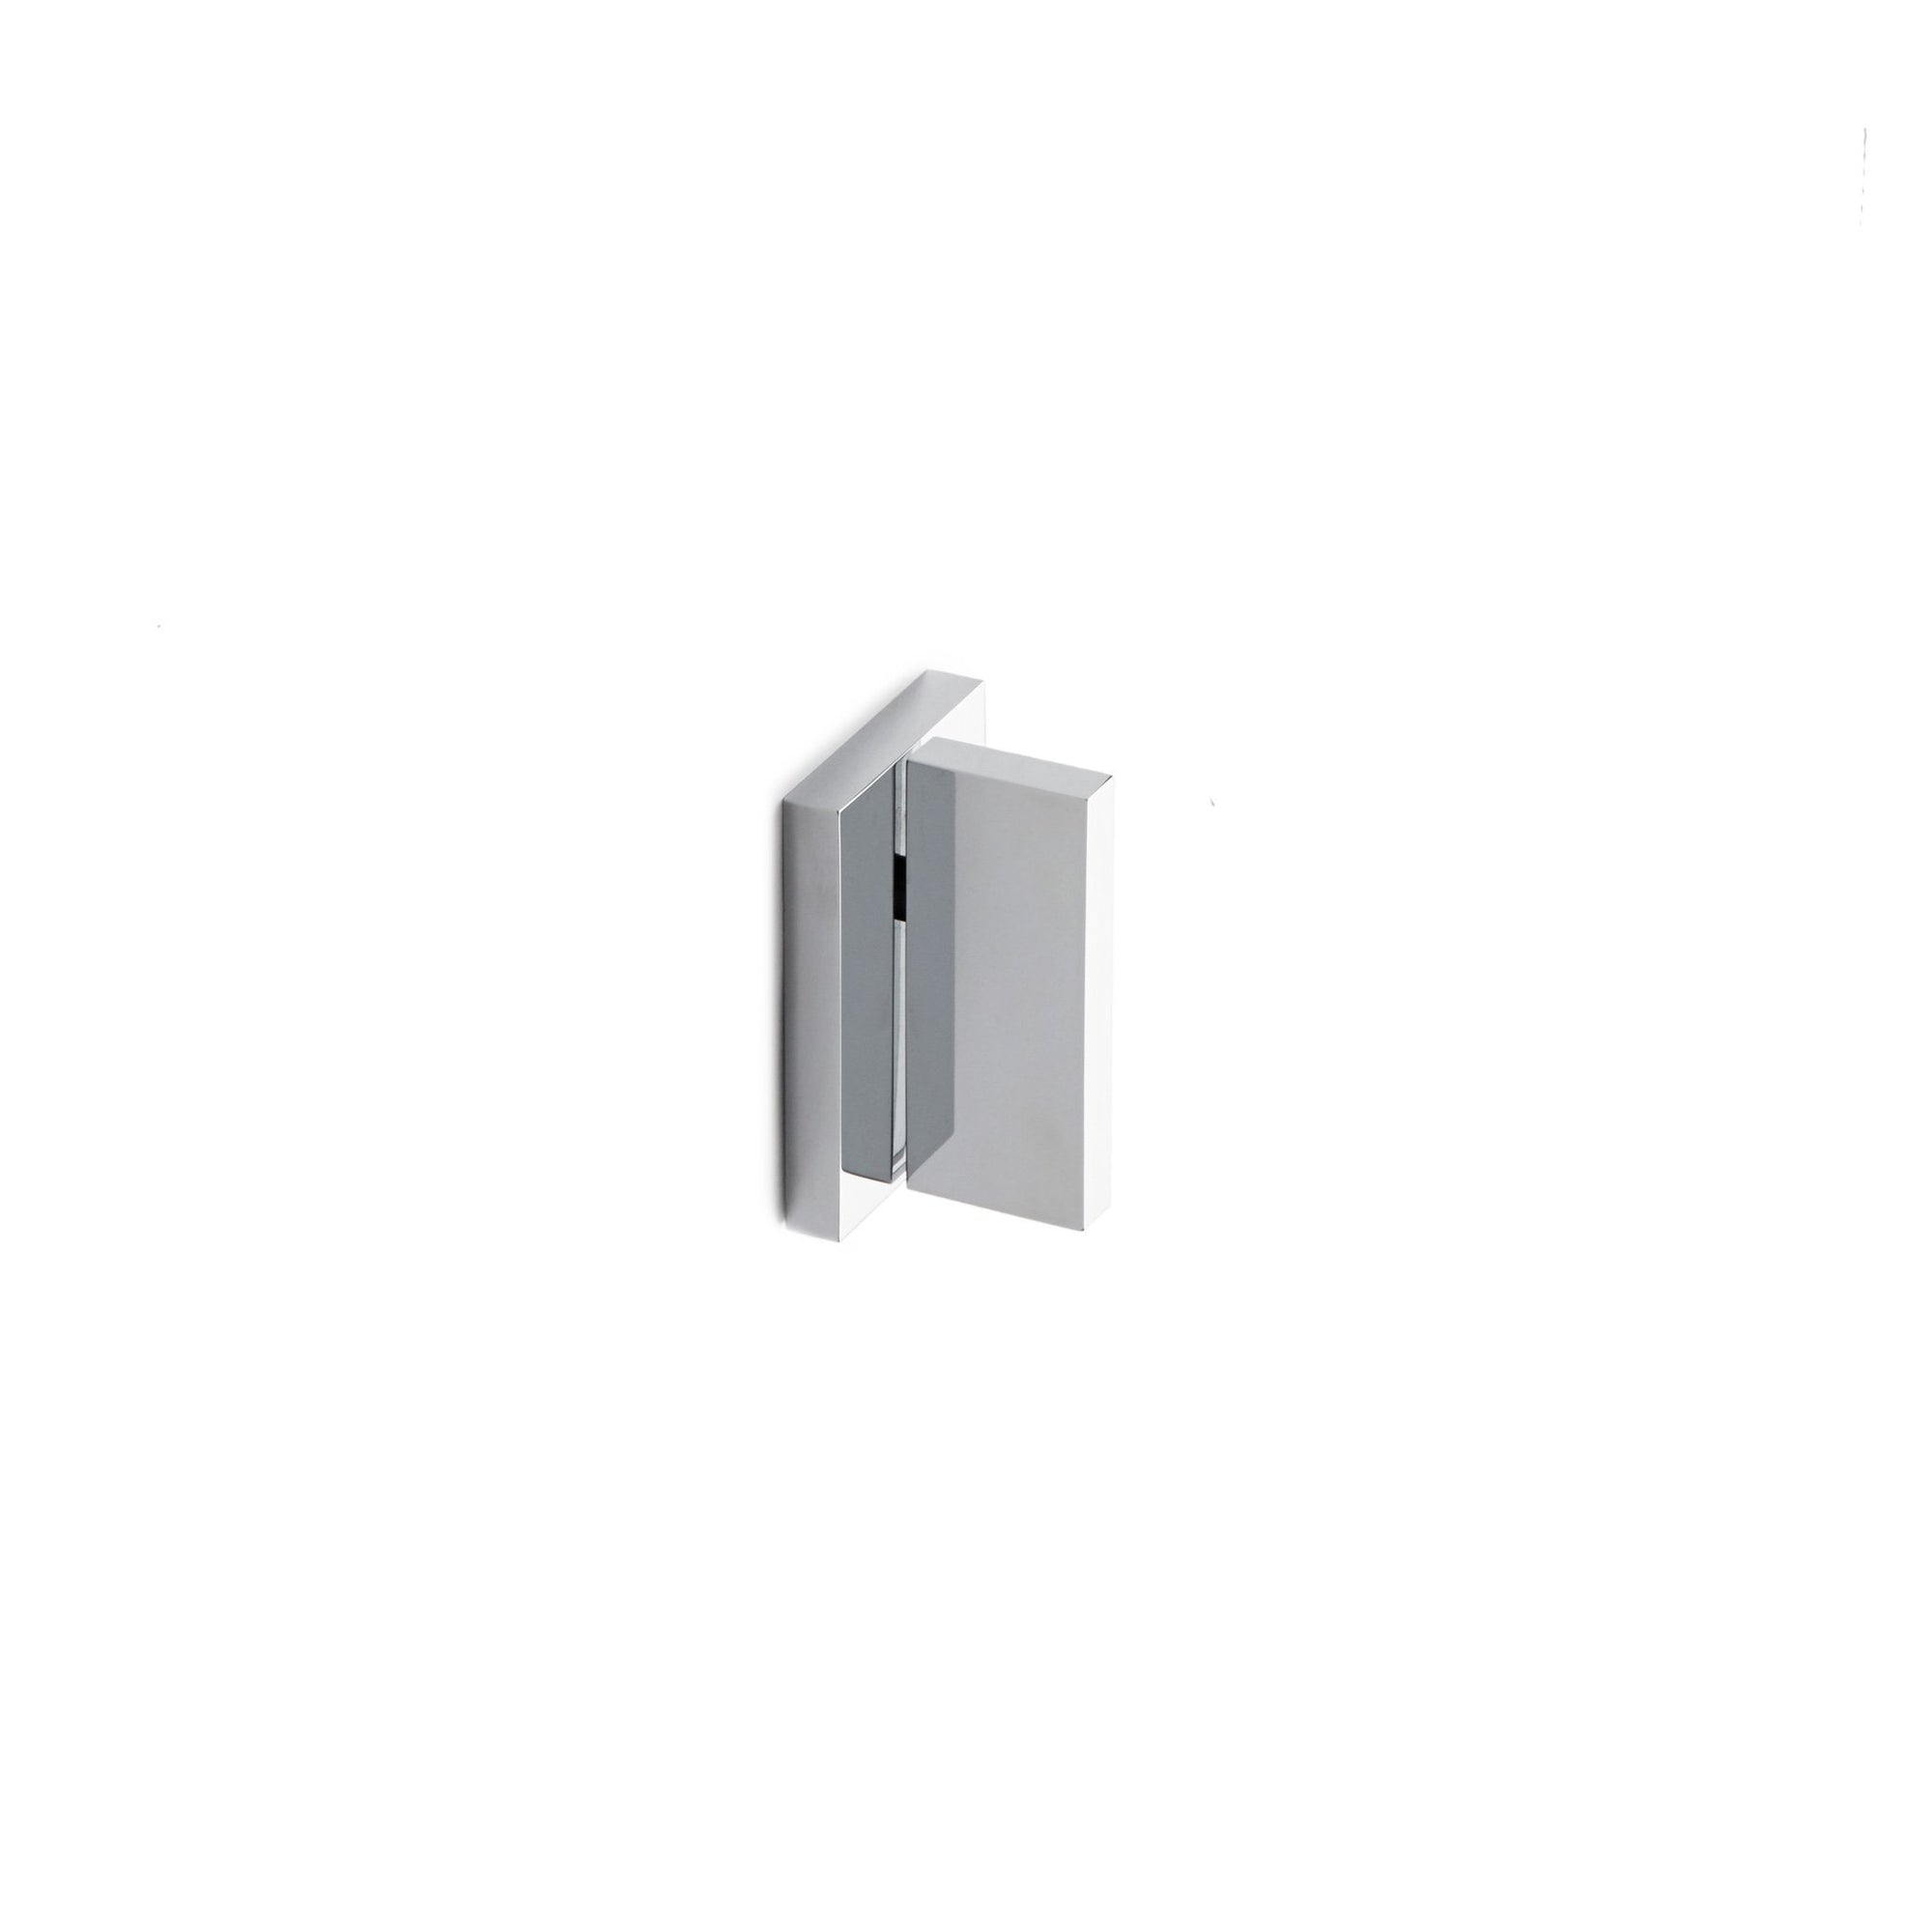 001LV-ESC-CP Sherle Wagner International Aqueduct Lever Volume Control and Diverter Trim in Polished Chrome metal finish